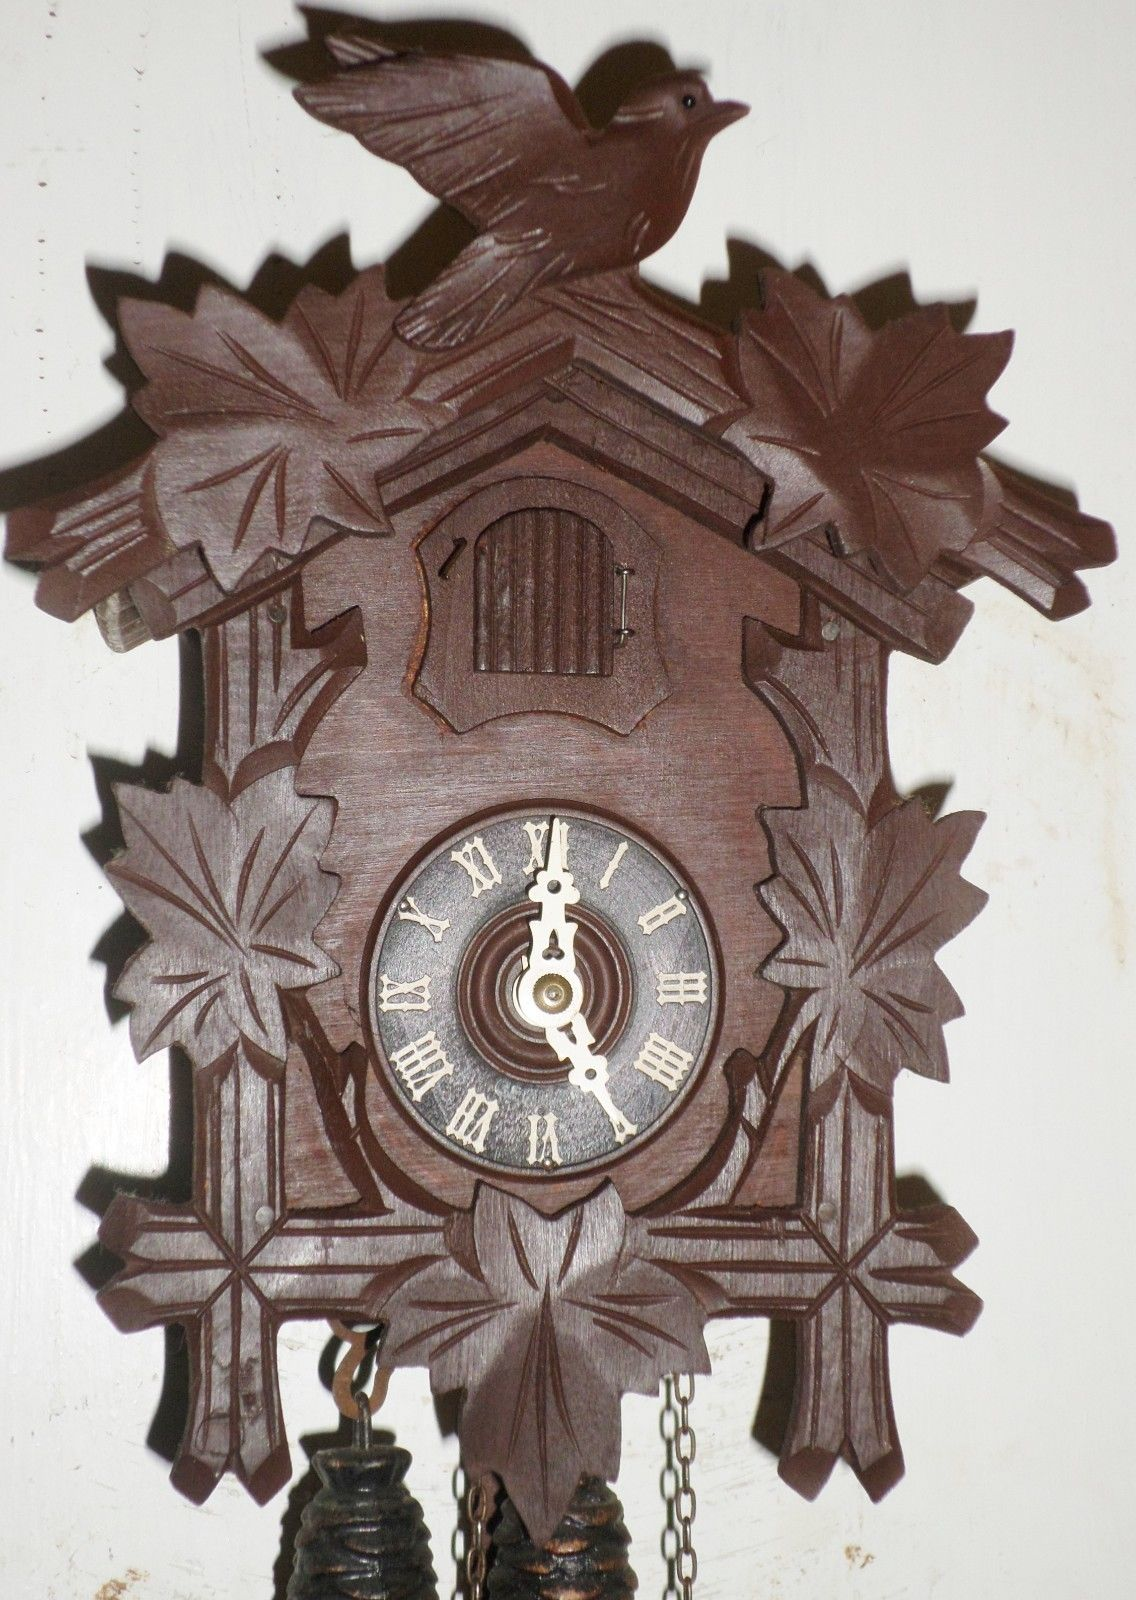 Koo Coo Clock Antiques And Collectibles Cuckoo